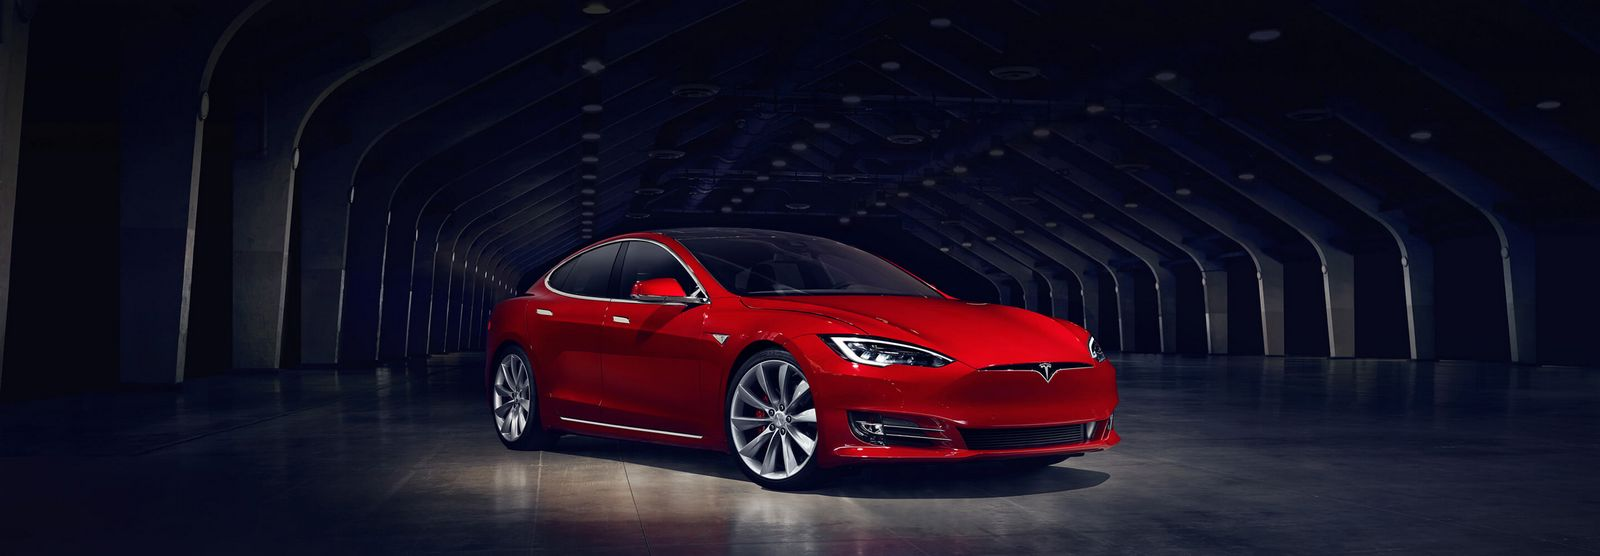 La Tesla Model S peut augmenter son autonomie à distance !